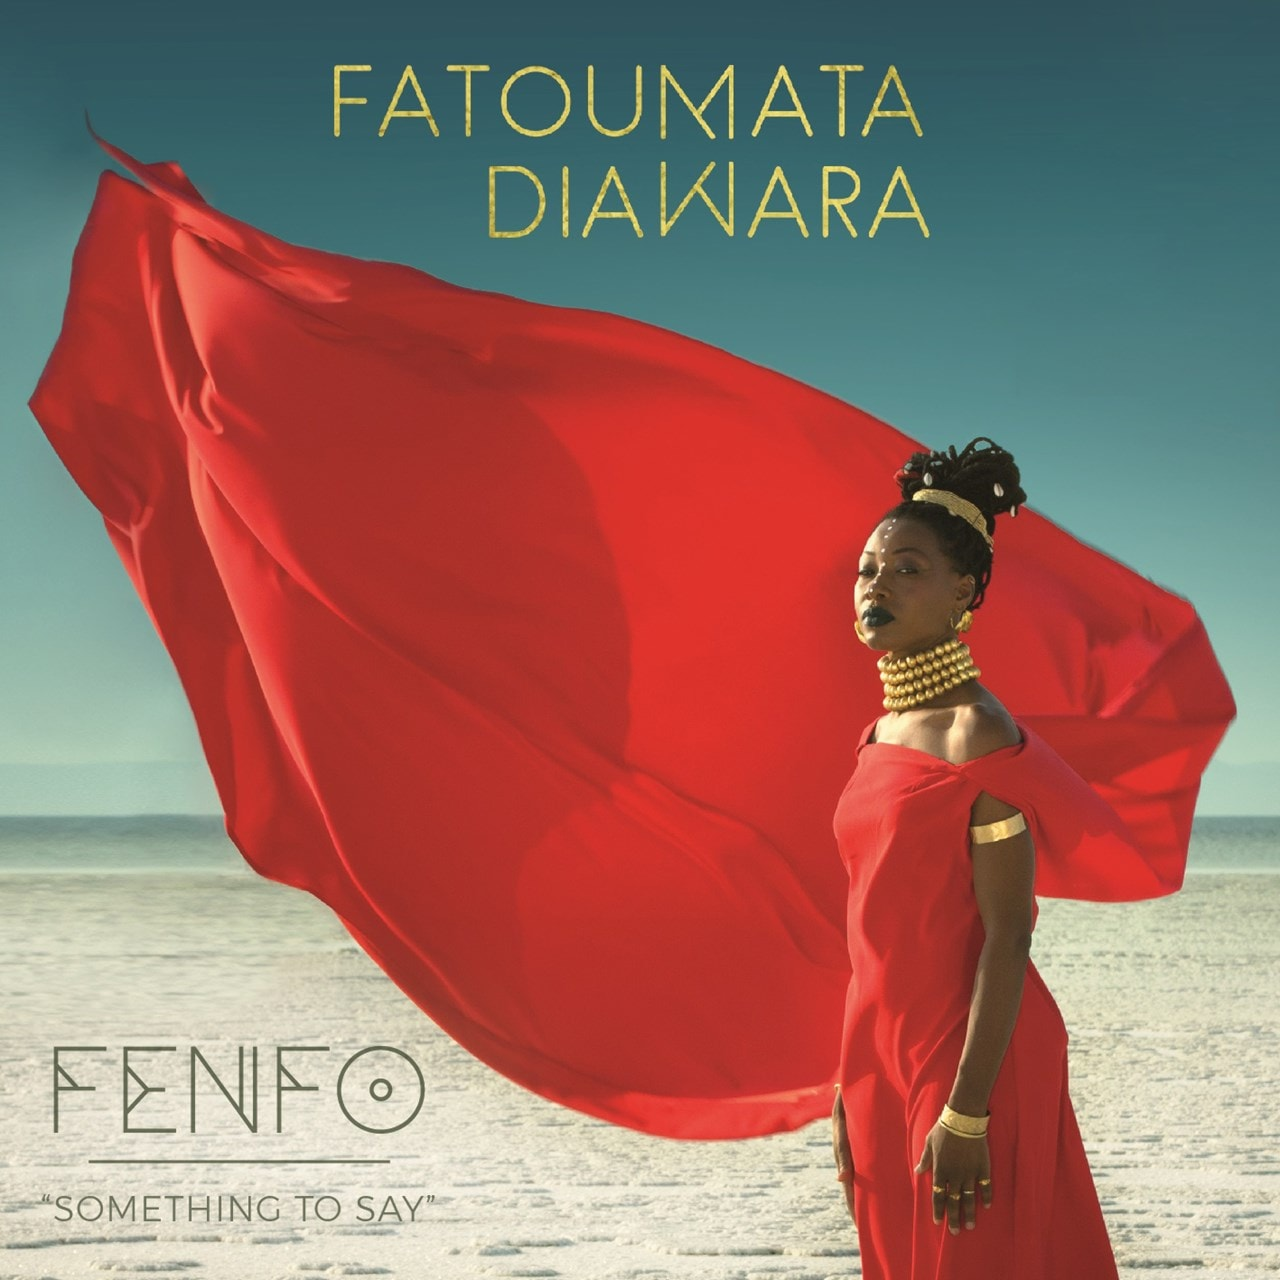 Fenfo: Something to Say - 1